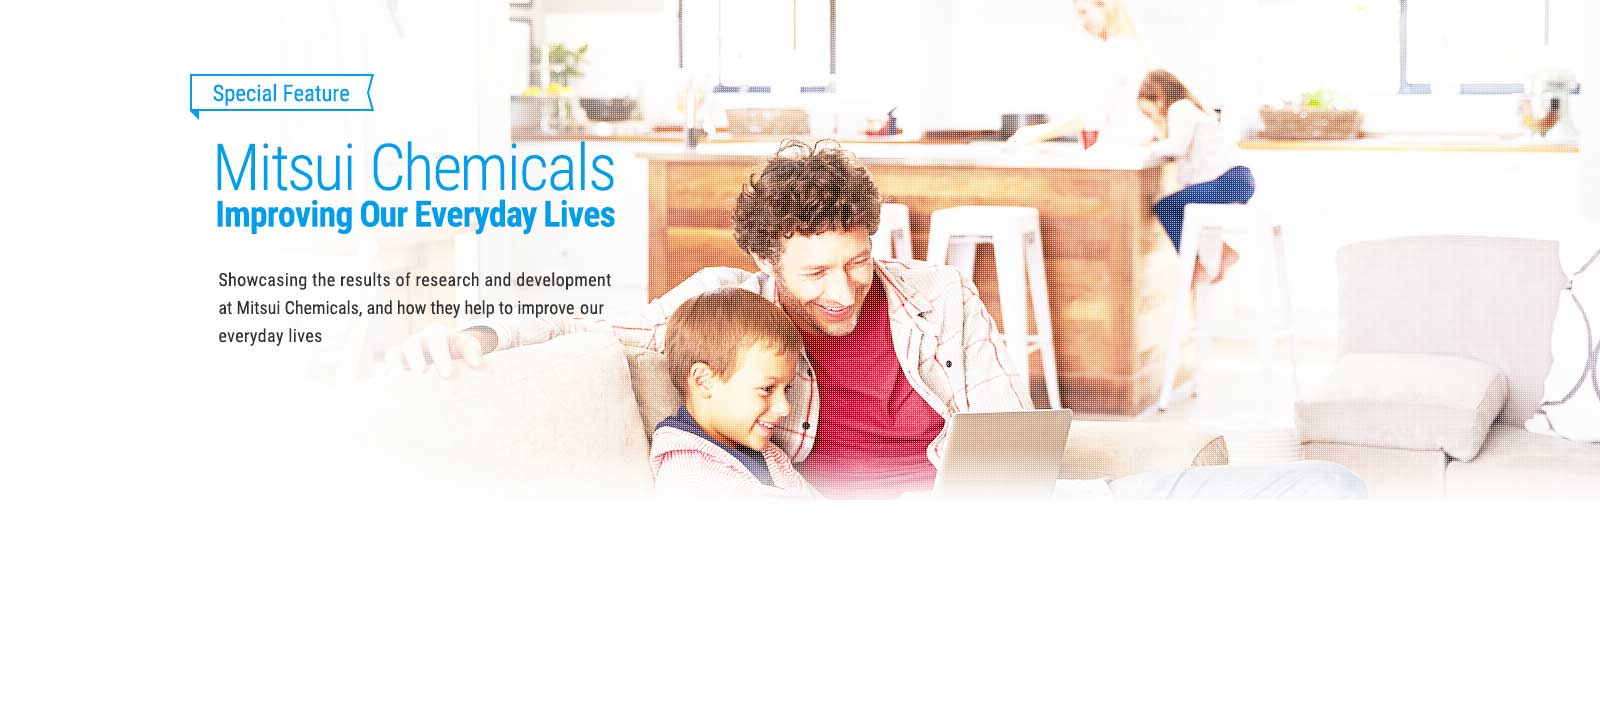 Mitsui Chemicals Improving Our Everyday Lives